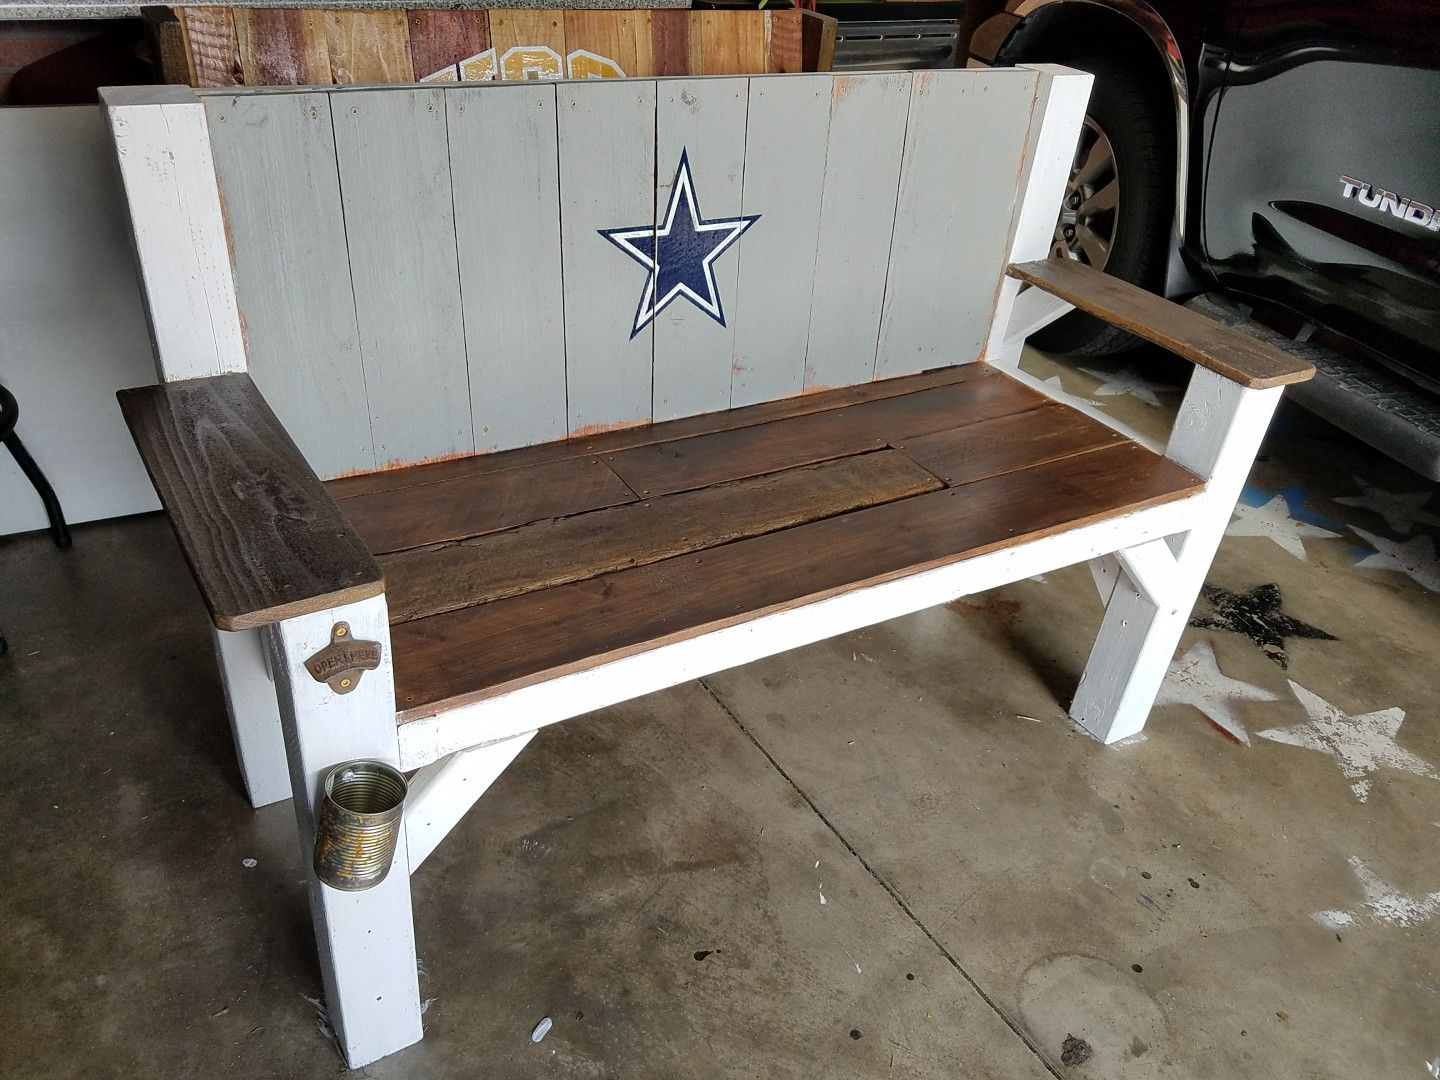 Small Wood Fan Bench 2x2 2x6 1x6 Wood Was Used Diy Stain And Paint Outdoor Wood Projects Diy Outdoor Wood Projects Wood Projects